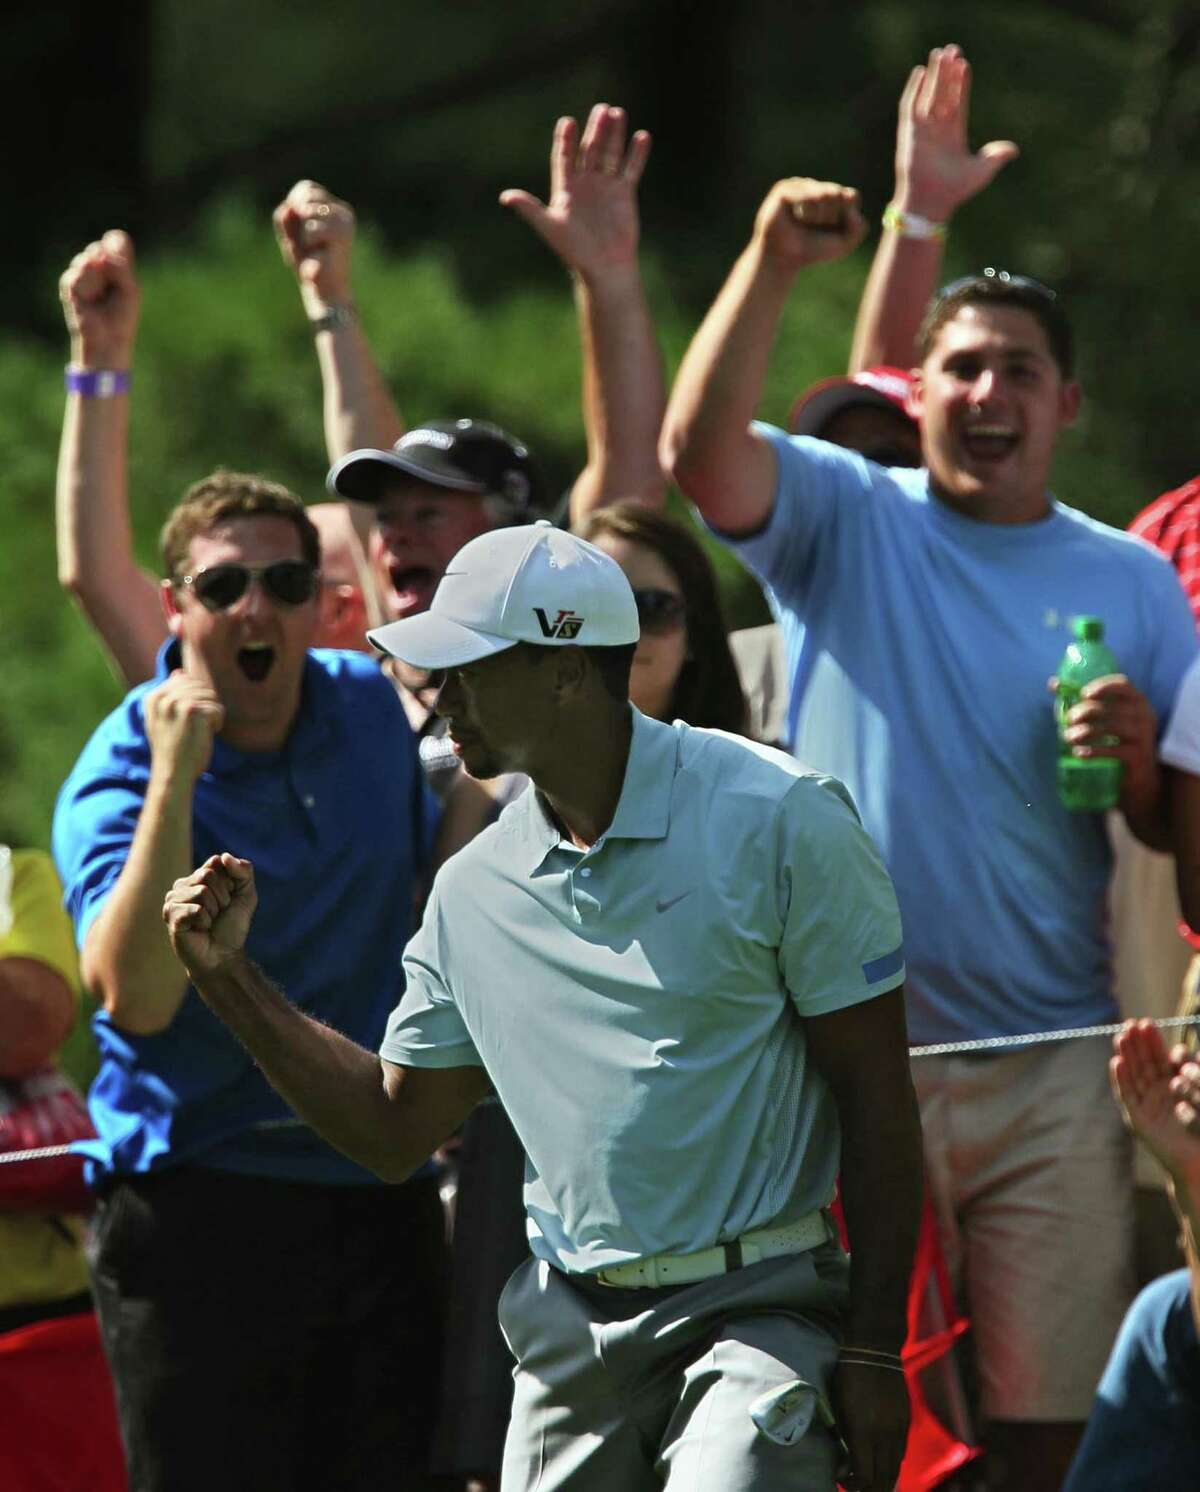 Tiger Woods wasn't on pace to tie his career-best round like he did Friday, but the Bridgestone leader did enough Saturday to maintain his seven-shot cushion.